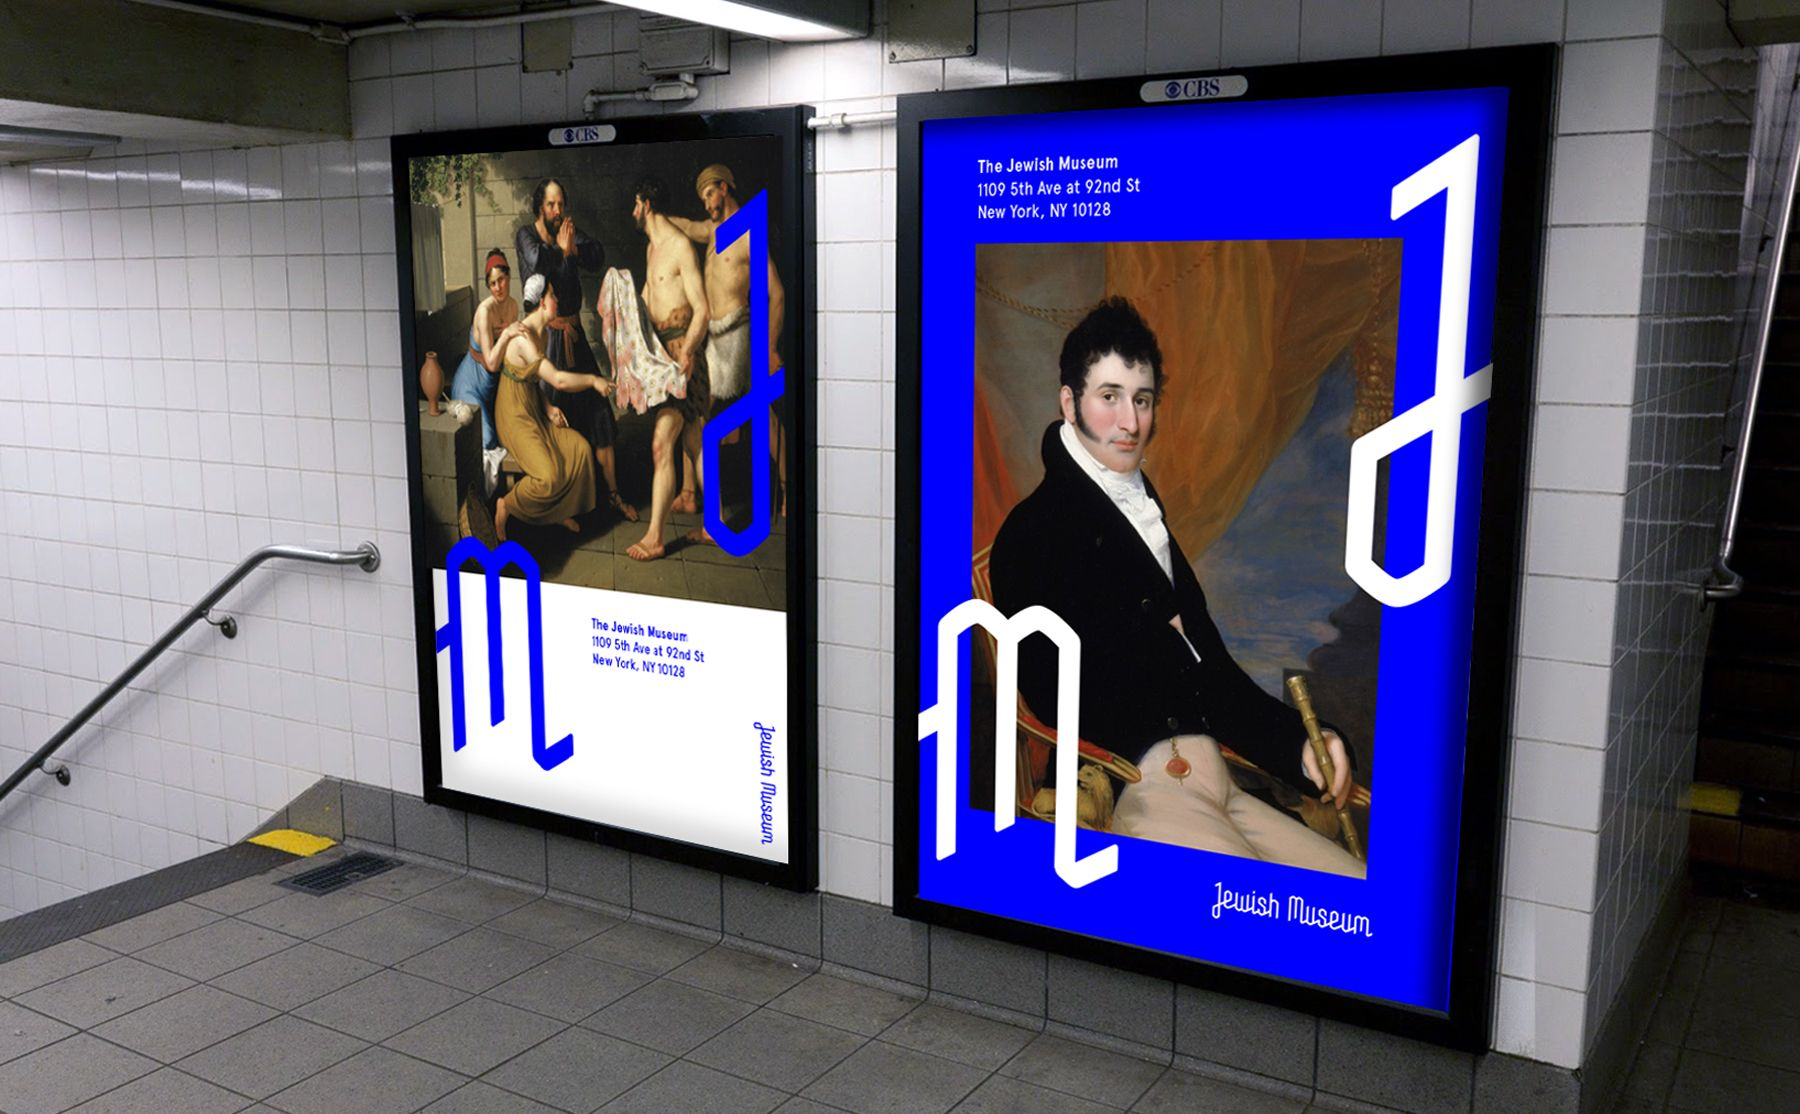 Magazine Sagmeister And Walsh For The NY Jewish Museum